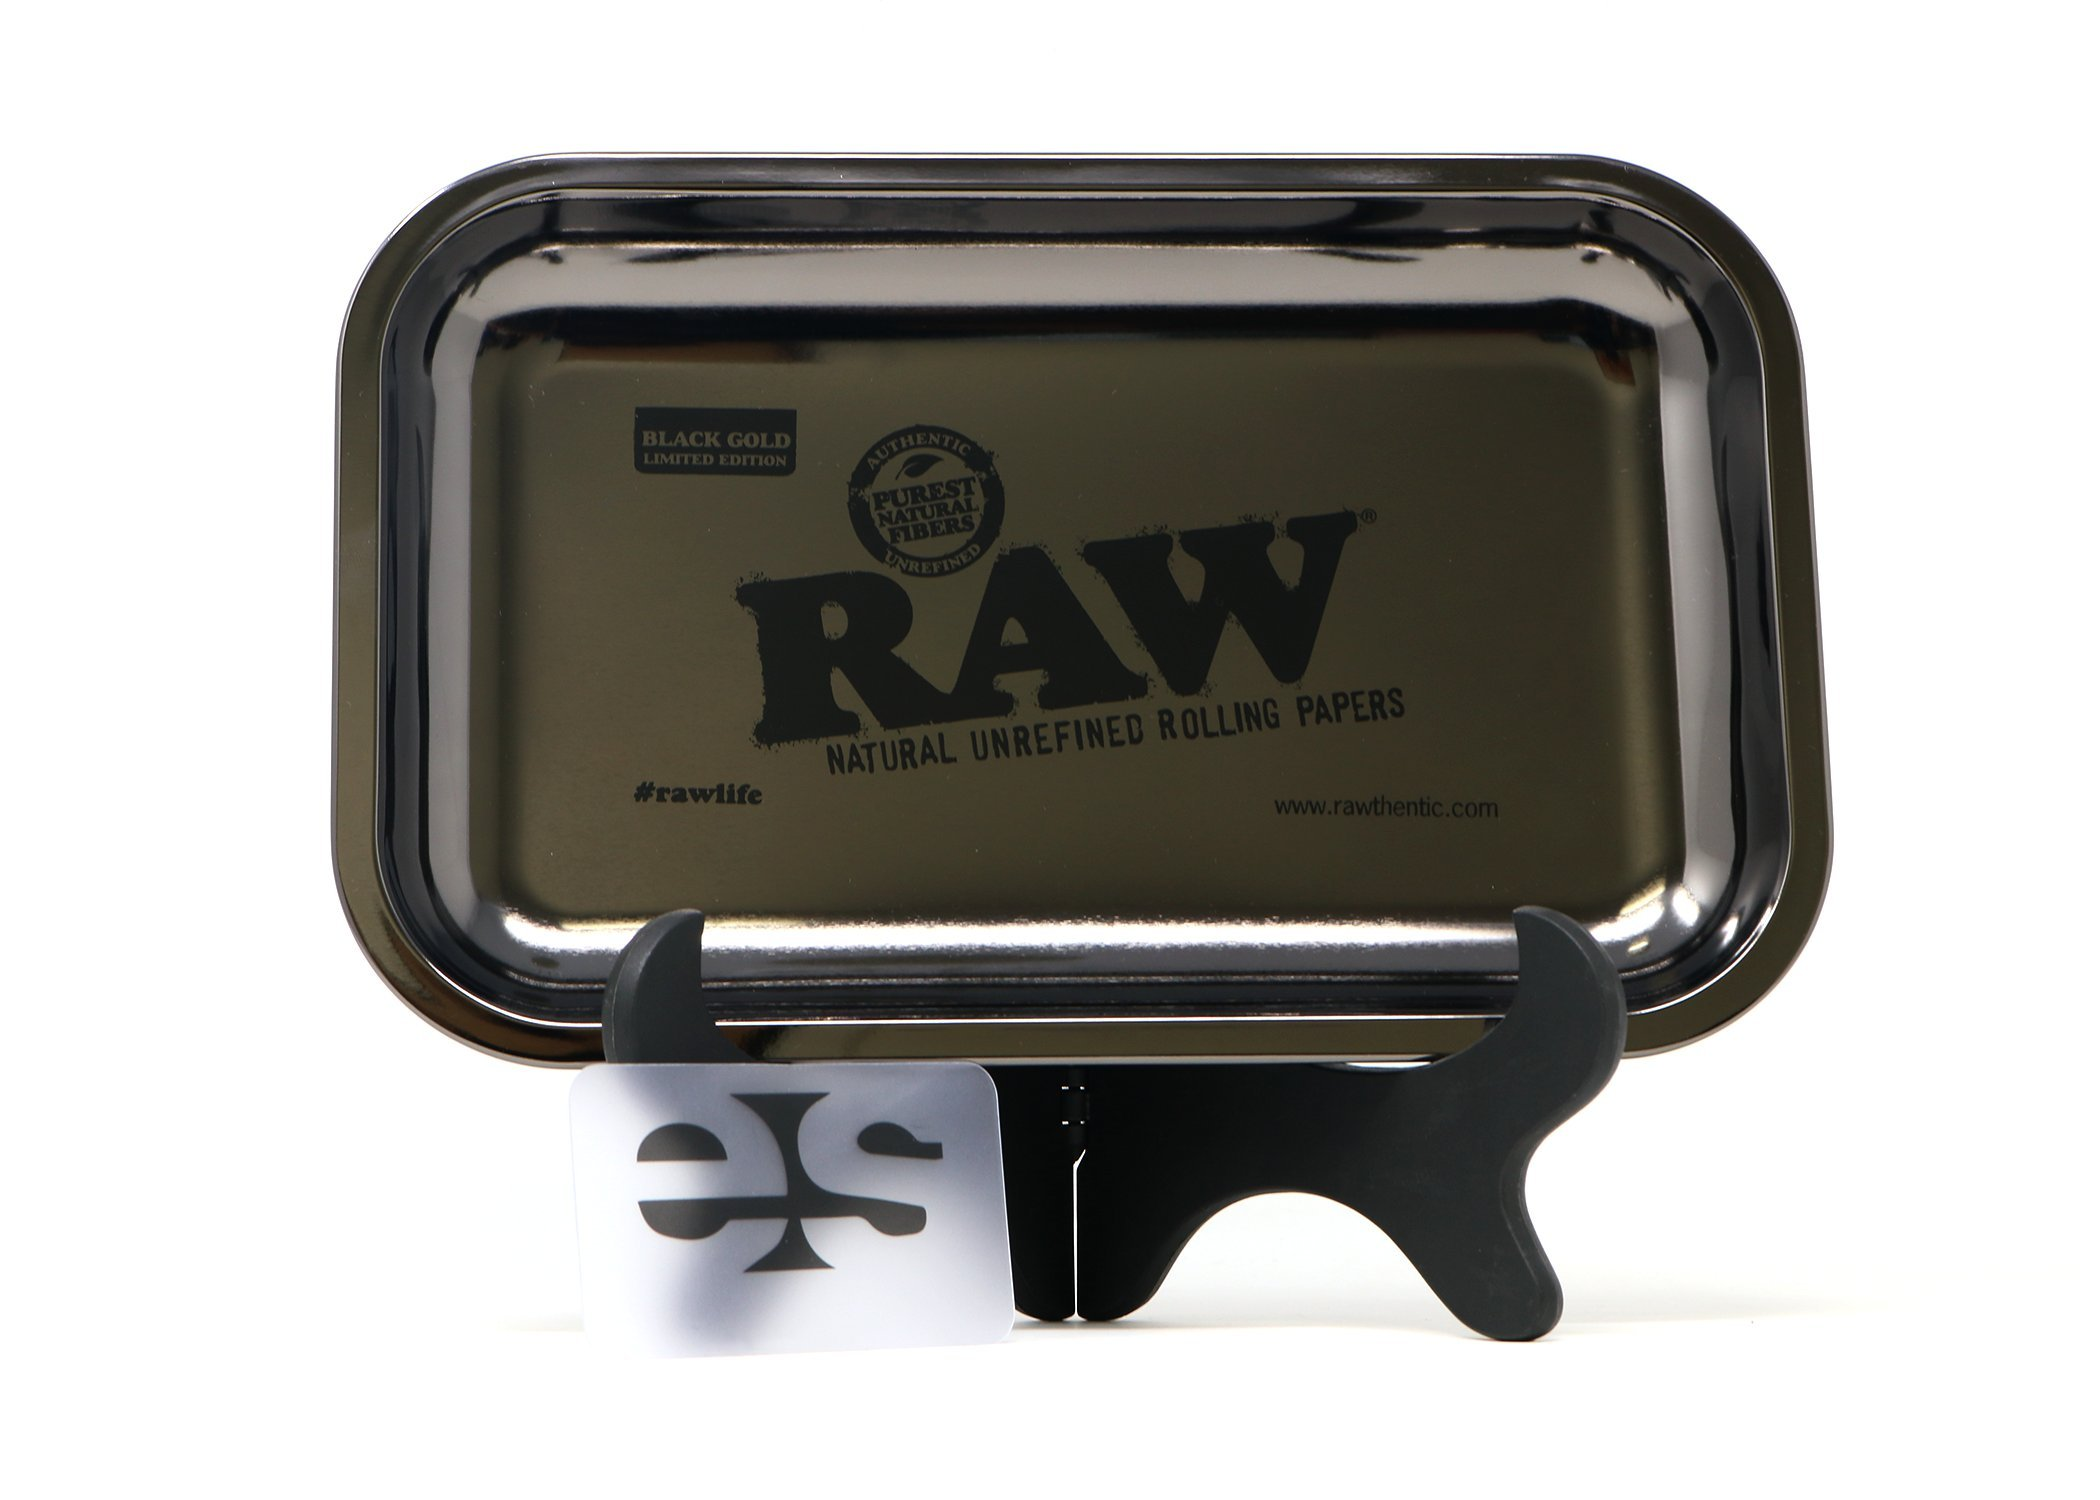 RAW Limited Edition Black Gold Tray (Small)